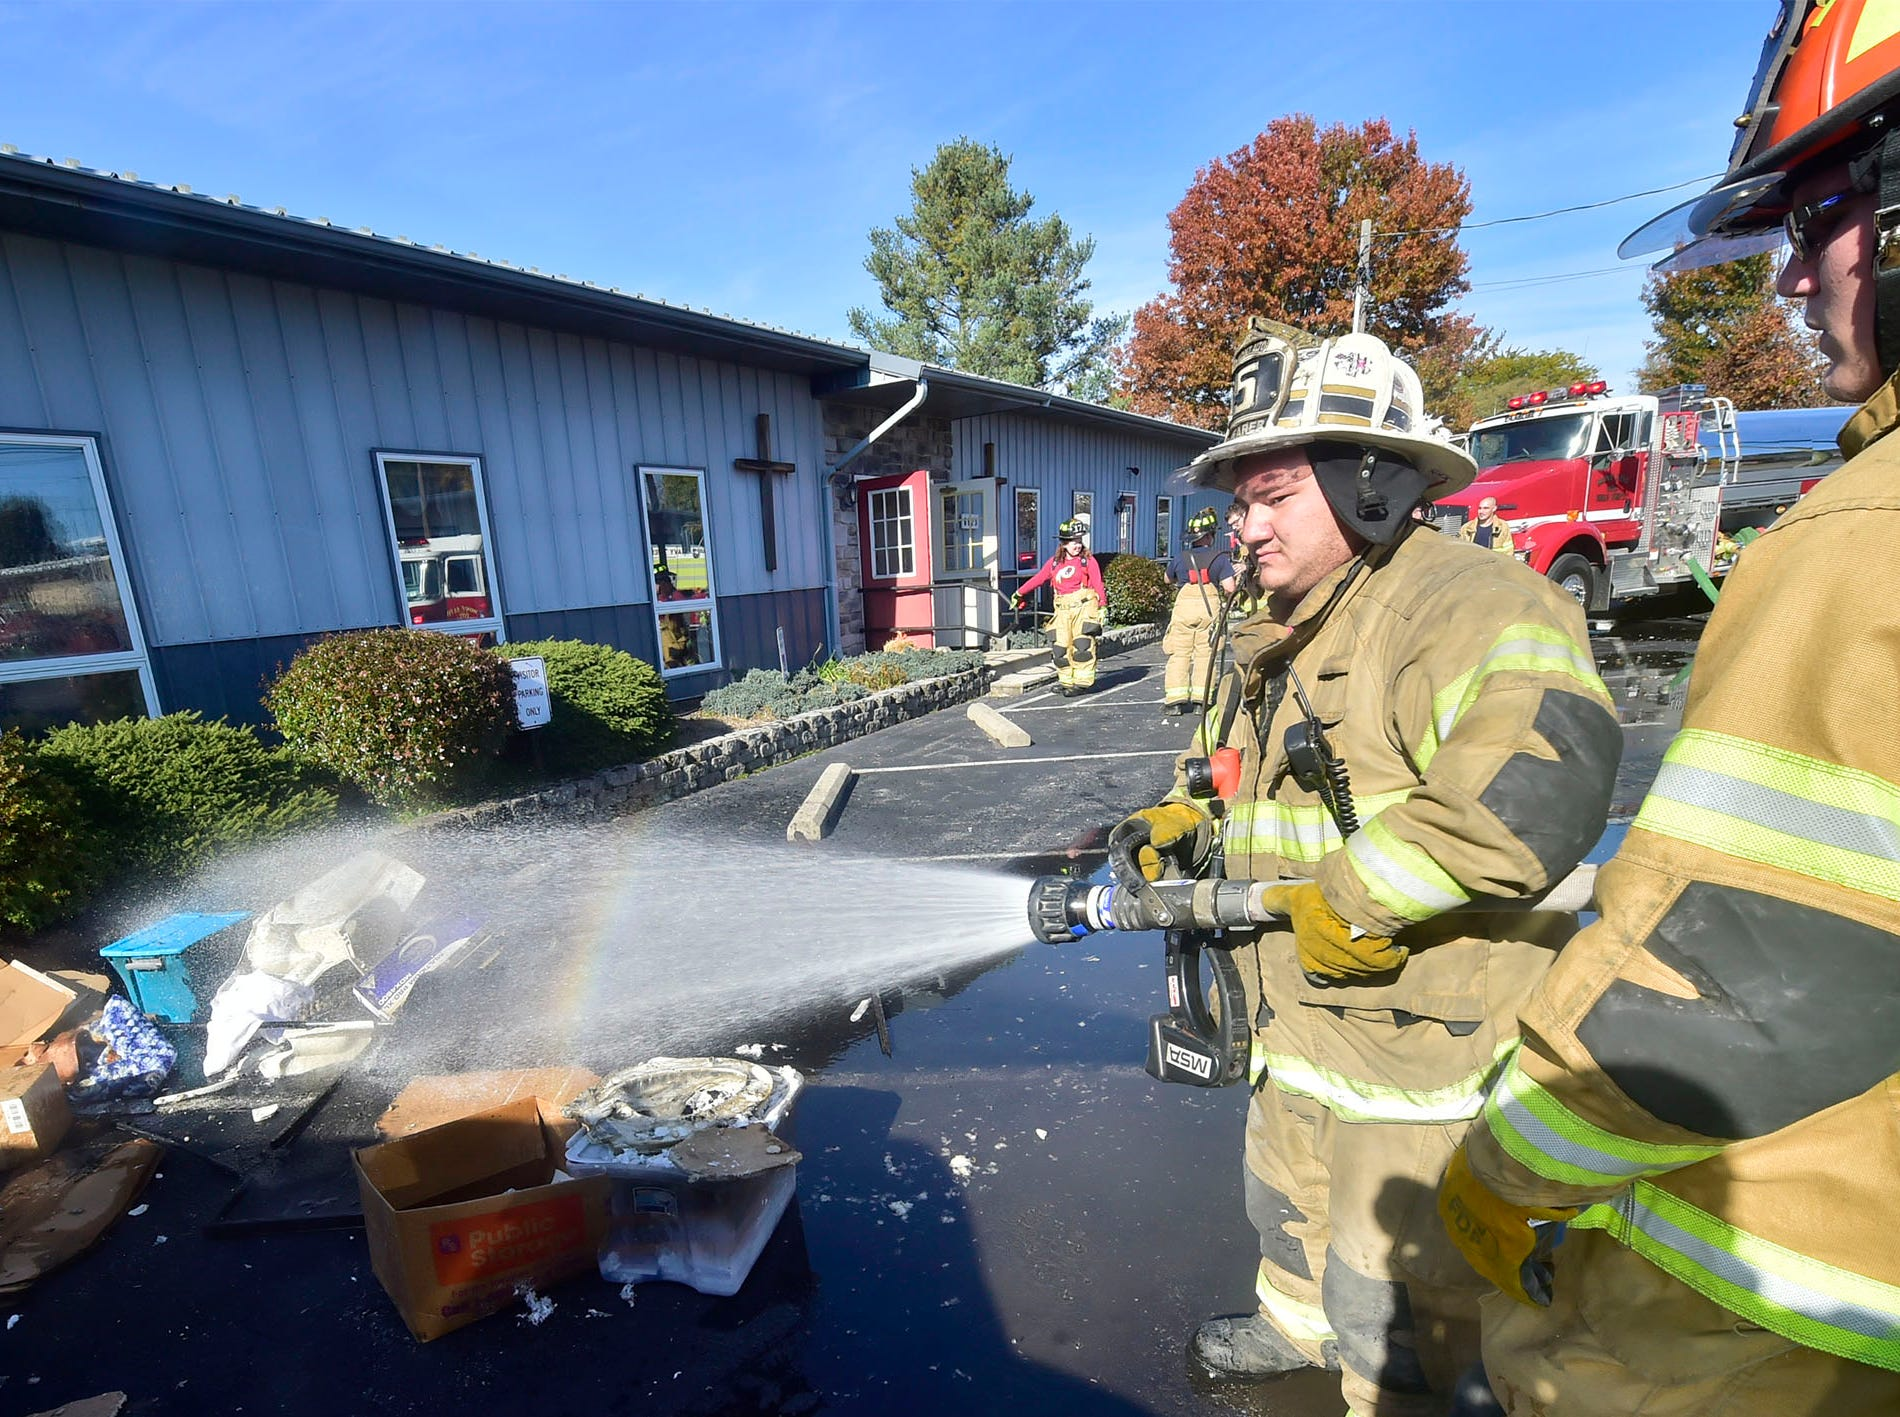 Firefighters dose debris with a hose. A working fire was reported just before 1 p.m. at Central Baptist Church 6025 Anthony Highway, on Sunday, November 4, 2018. The church is across the street from Mont Alto Volunteer Fire Company. No injuries were reported during the fire.